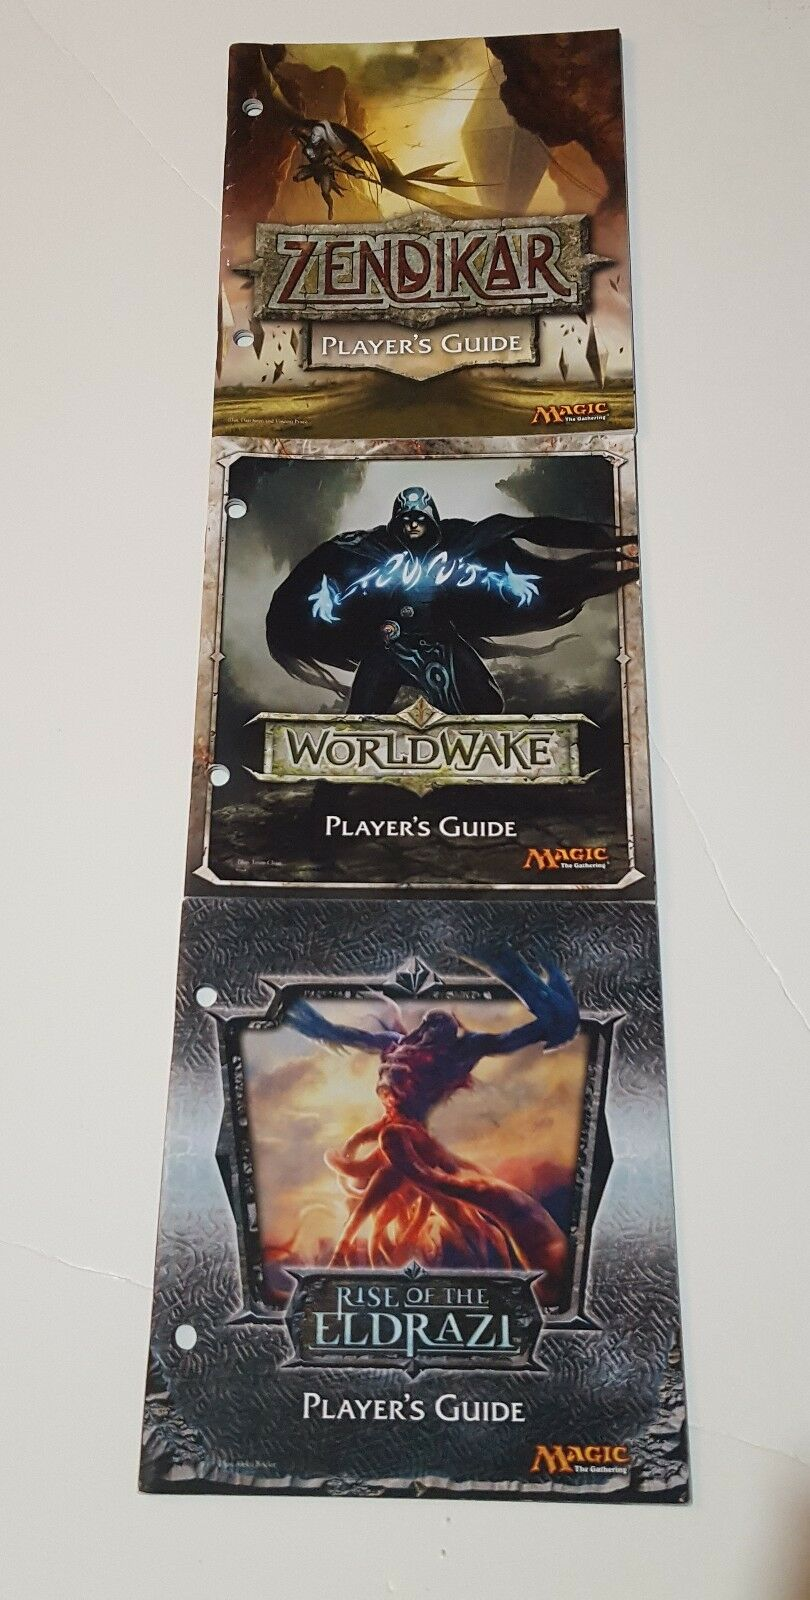 Mtg zendikar worldwake anstieg der eldrazi player 's guide menge 3